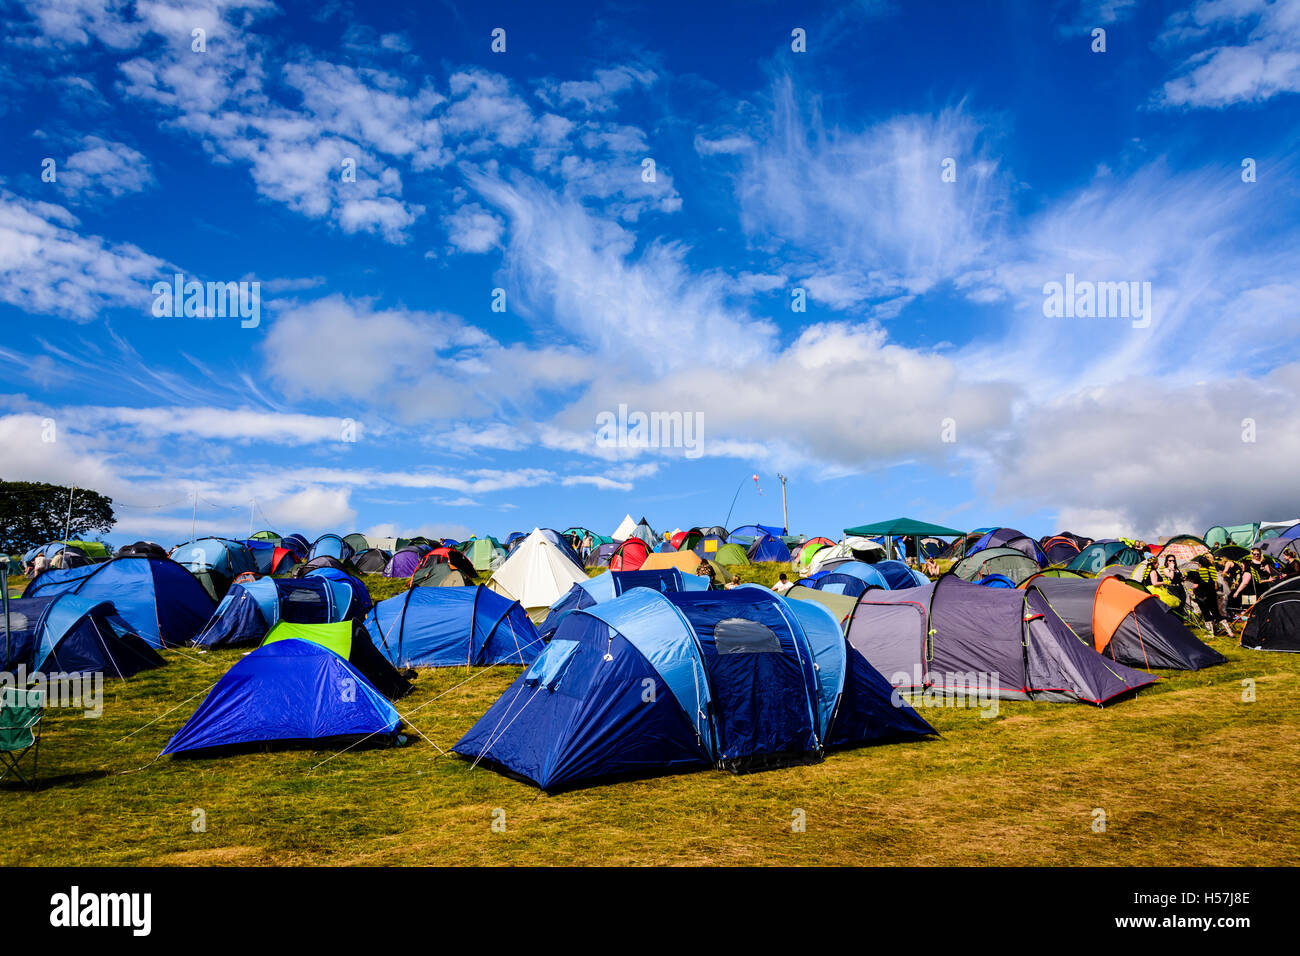 A collection of brightly coloured tents camping at Festival No.6, Portmeirion, Wales, UK - Stock Image